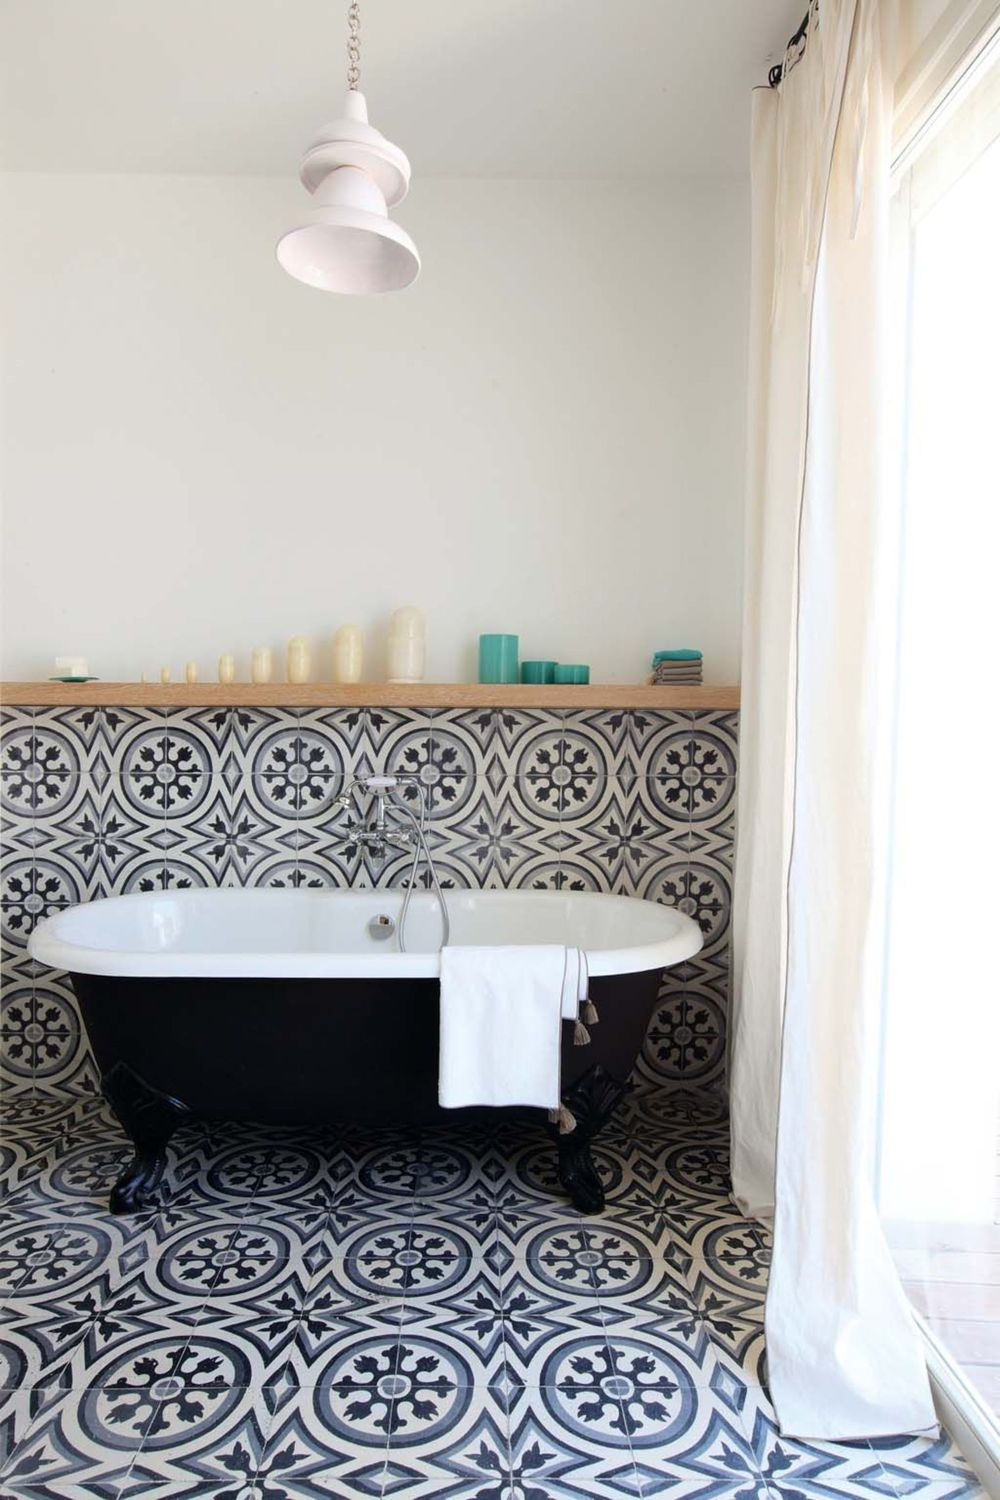 Une salle de bain en carreaux de ciment frenchy fancy for Deco sdb 2016